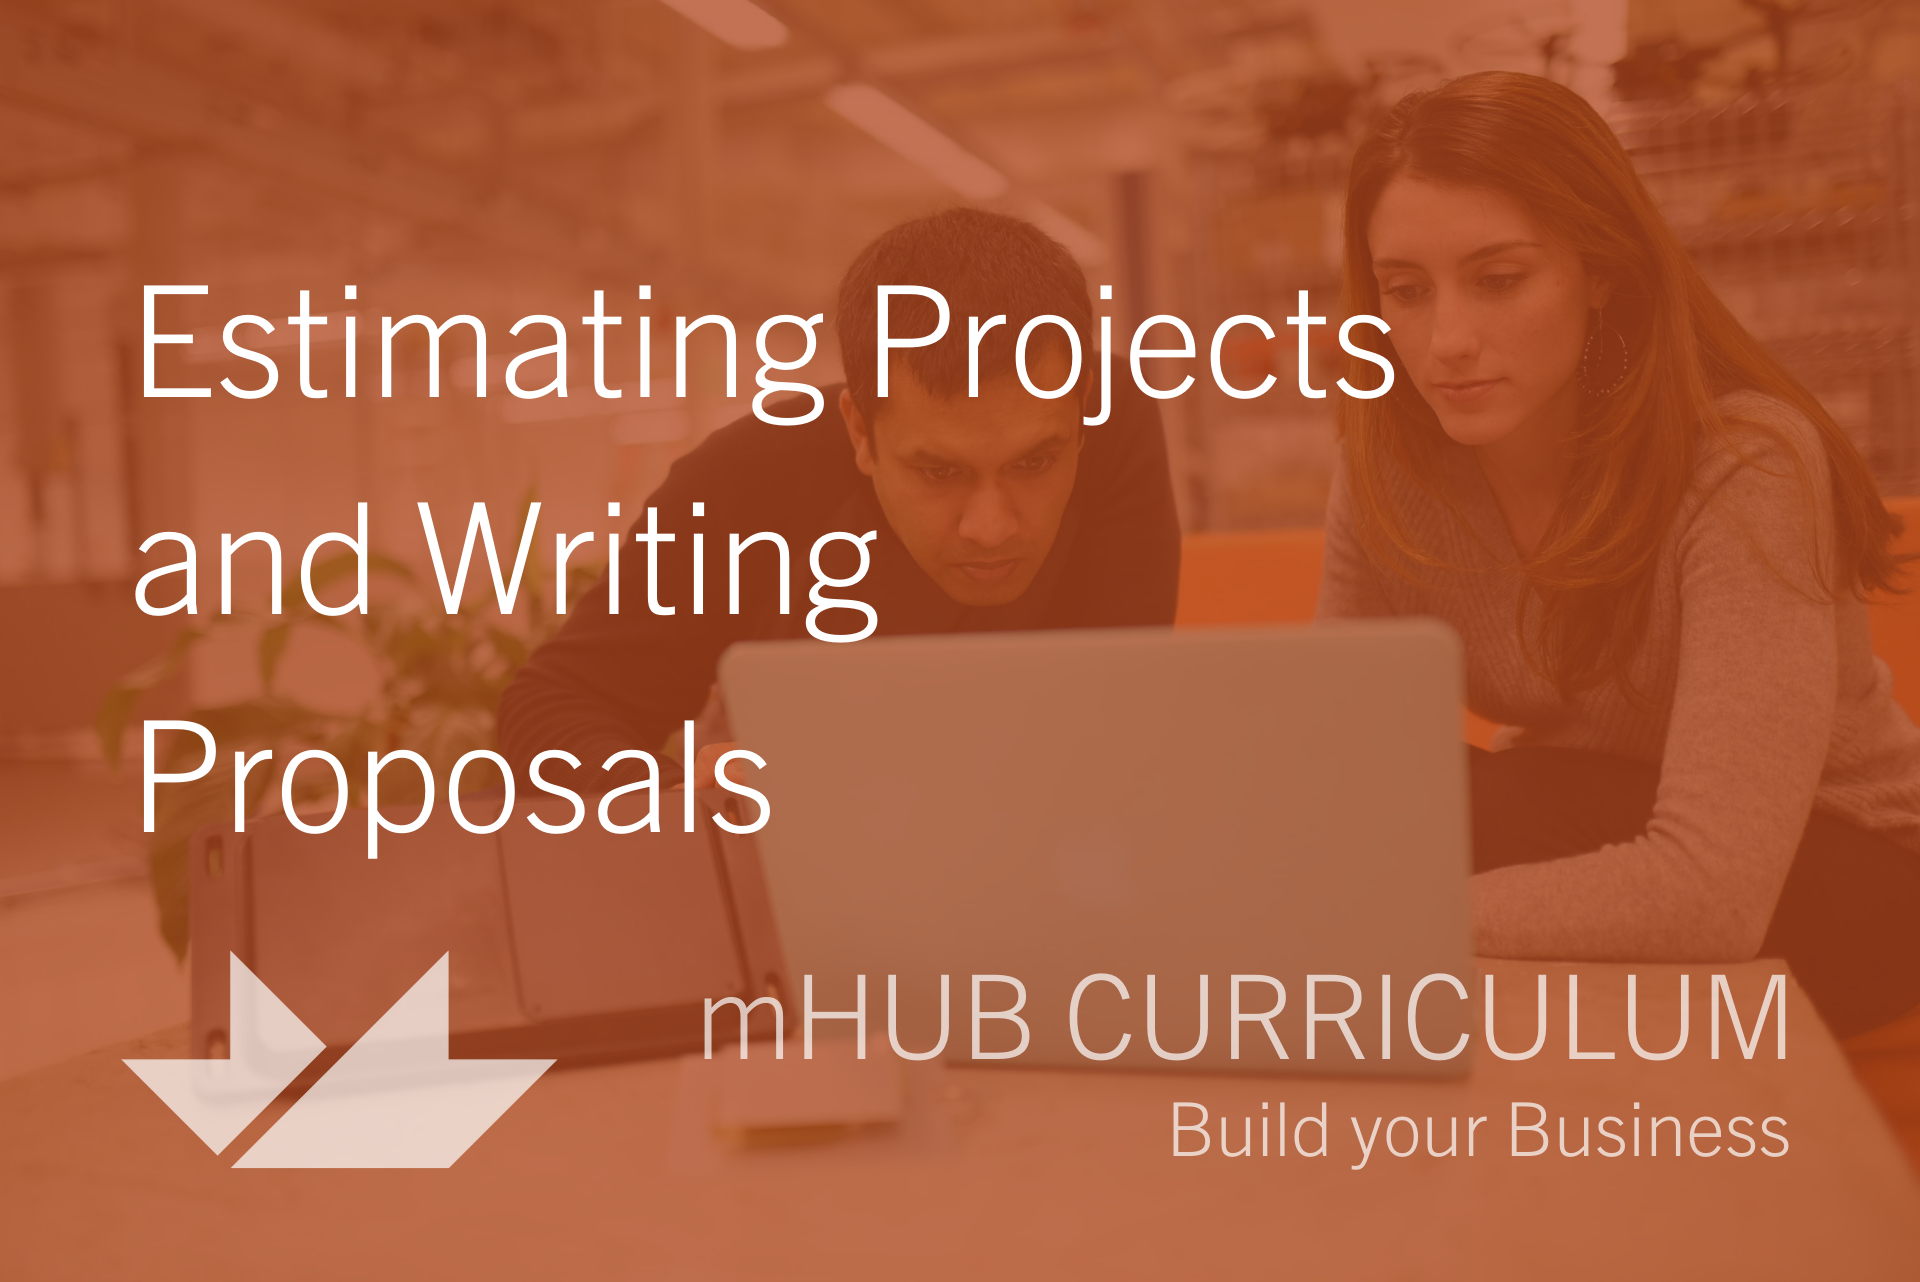 Estimating Projects and Writing Proposals